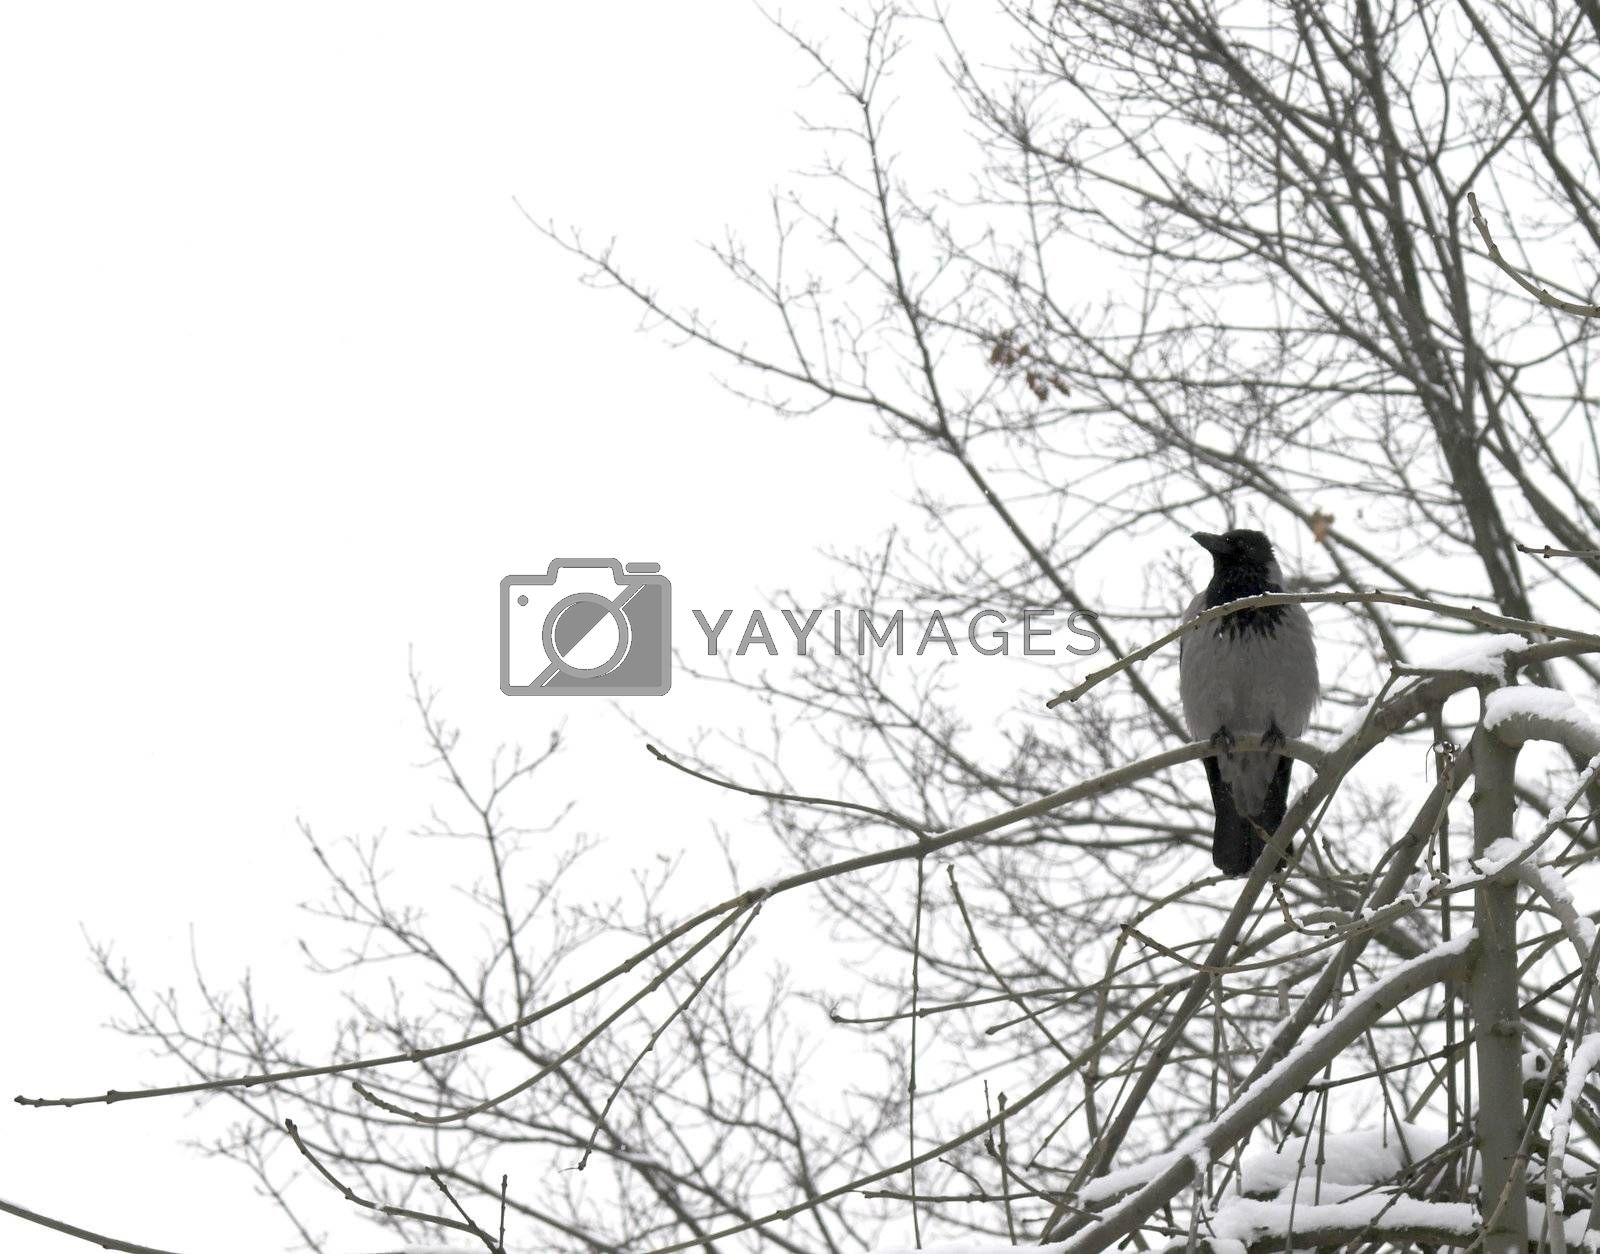 A crow perching on a snow-covered tree branch.